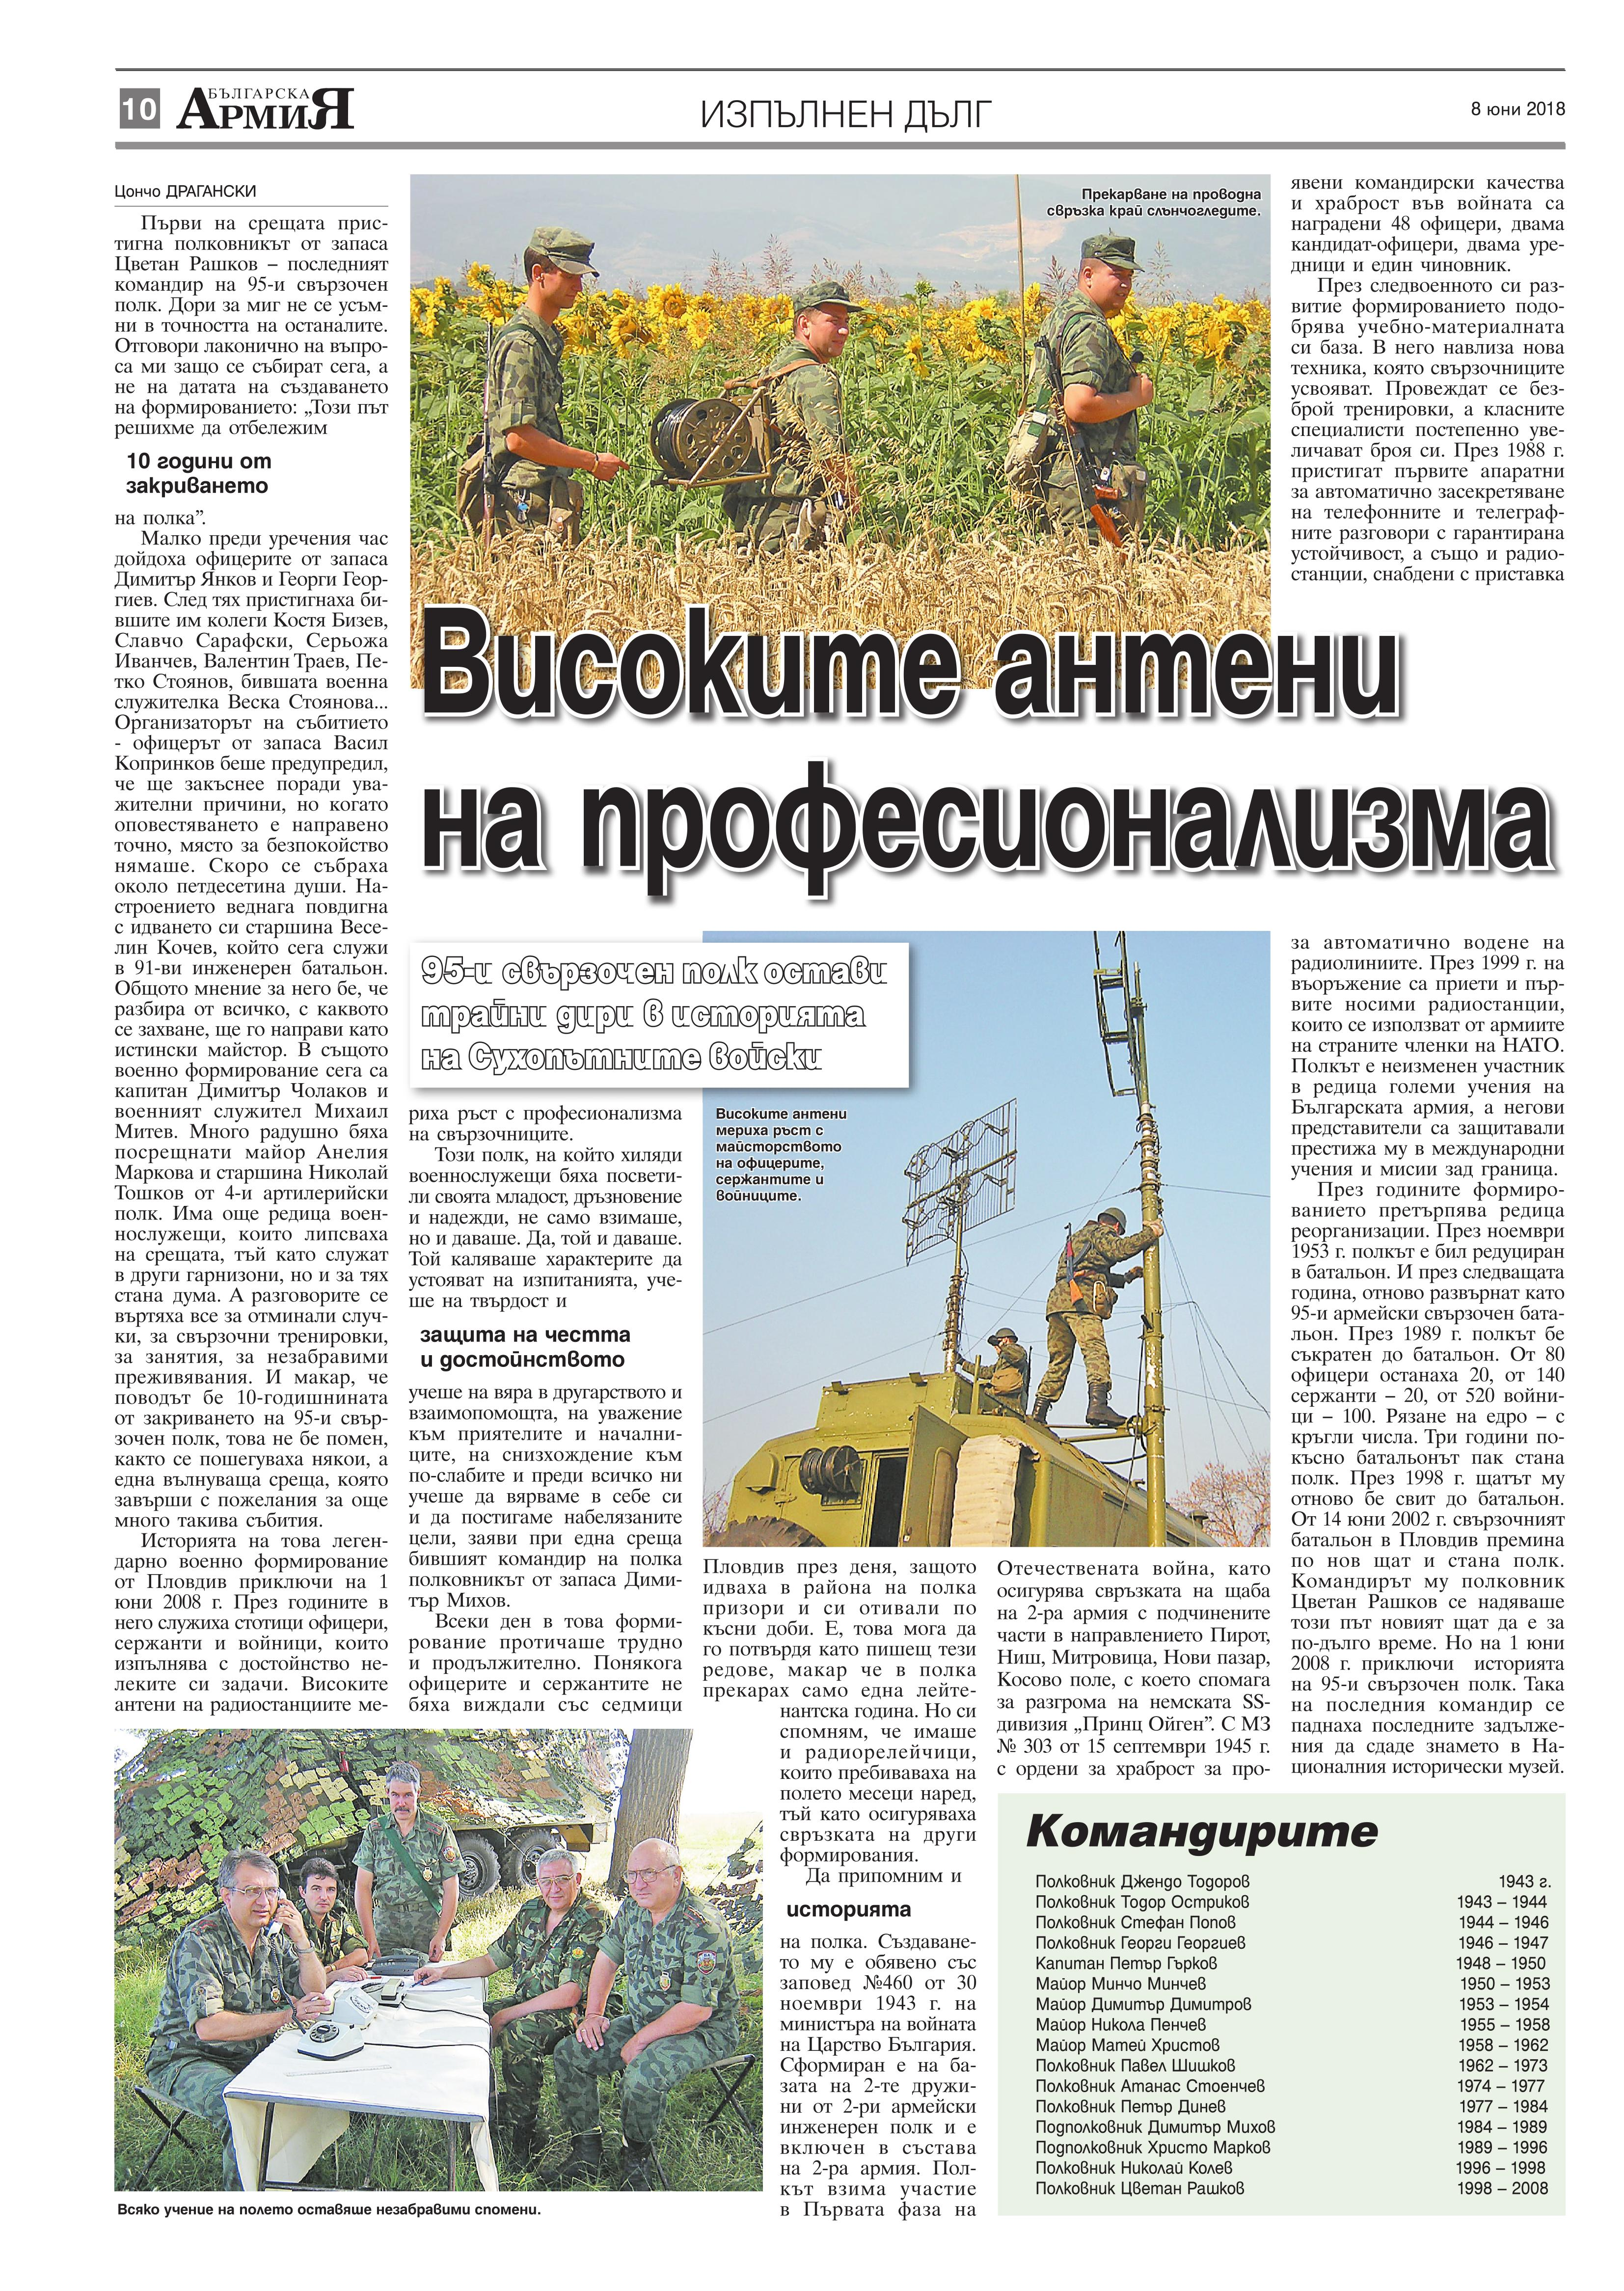 http://armymedia.bg/wp-content/uploads/2015/06/10.page1_-54.jpg